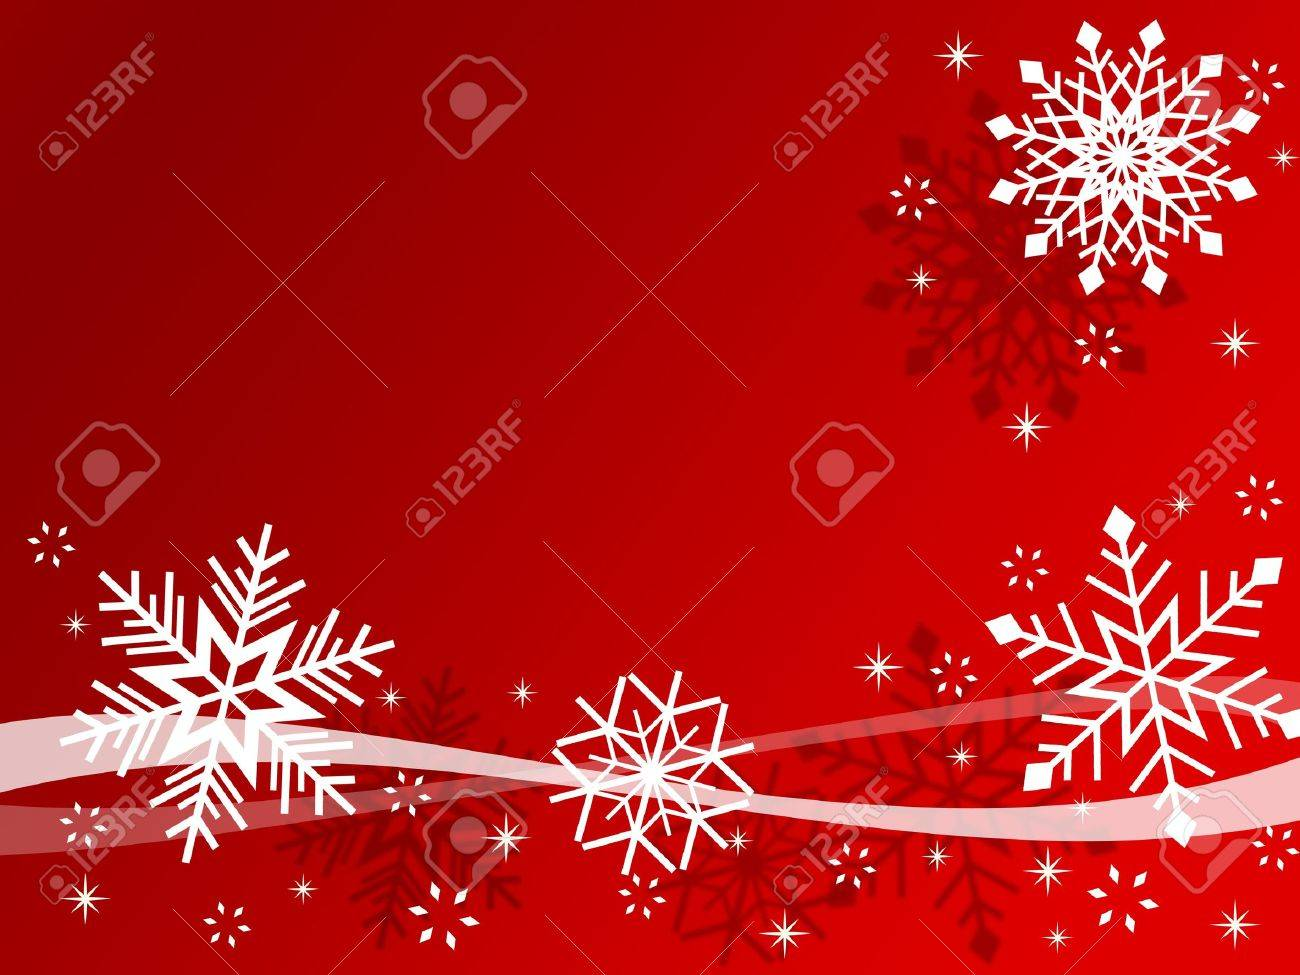 Red Christmas card with snowflakes Stock Photo - 10430438